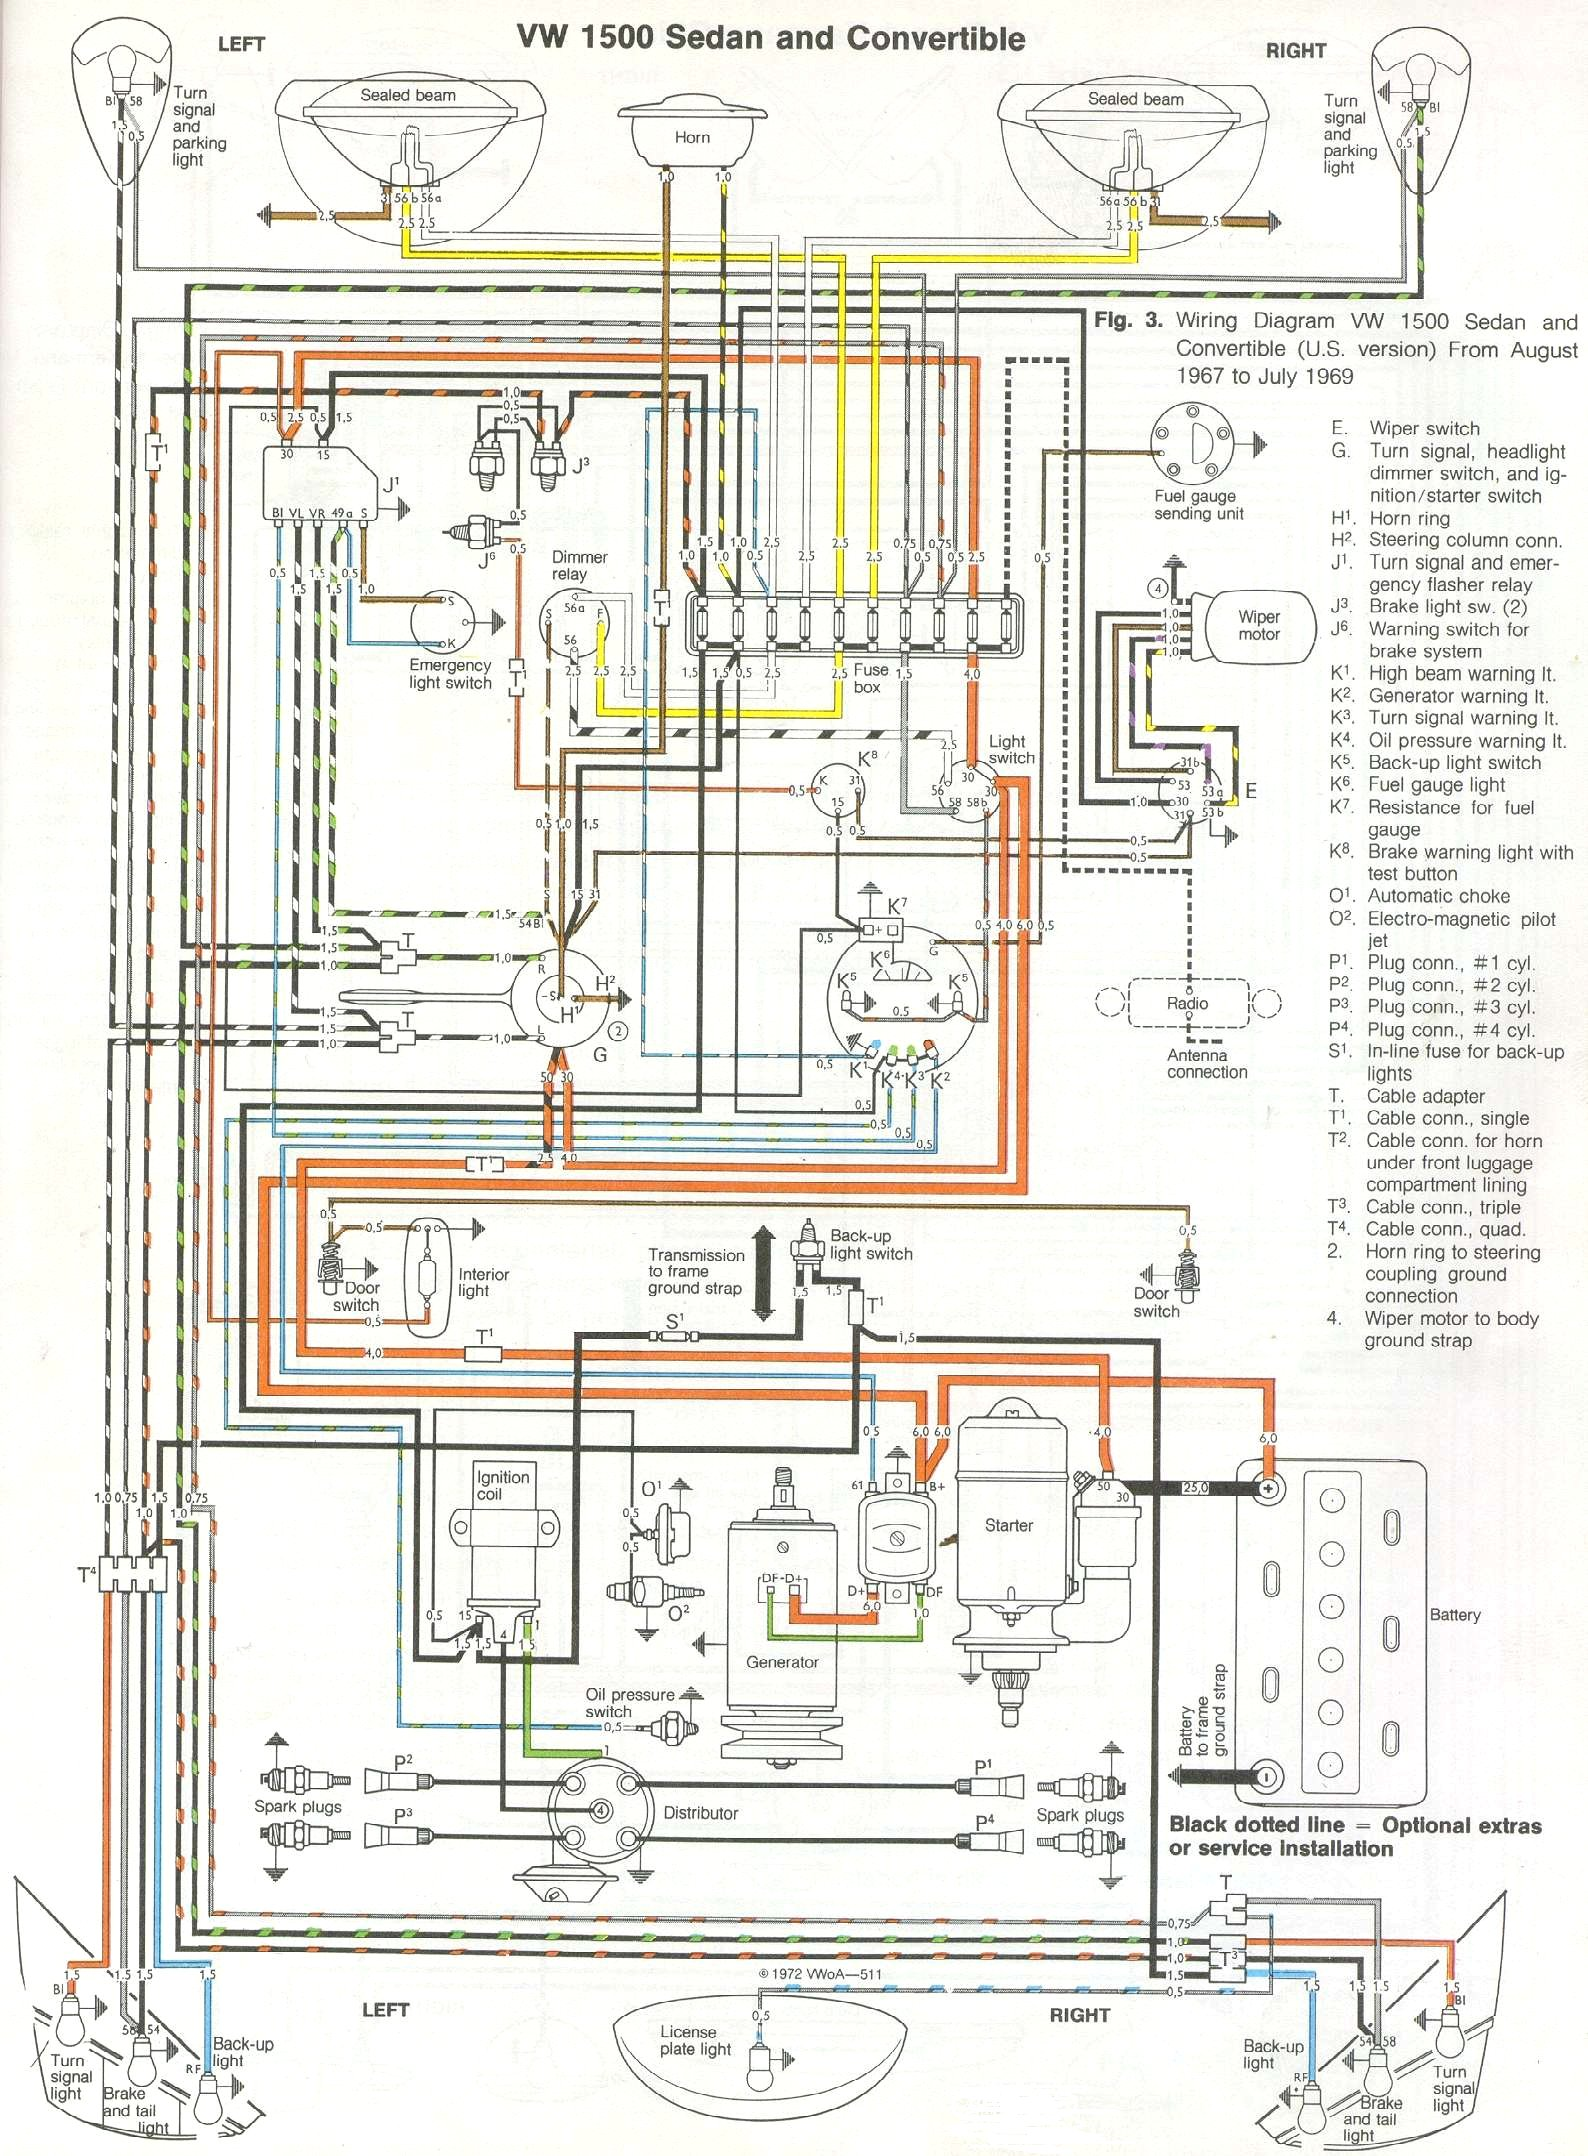 1968 vw wiring diagram automotive wiring diagram library u2022 rh seigokanengland co uk